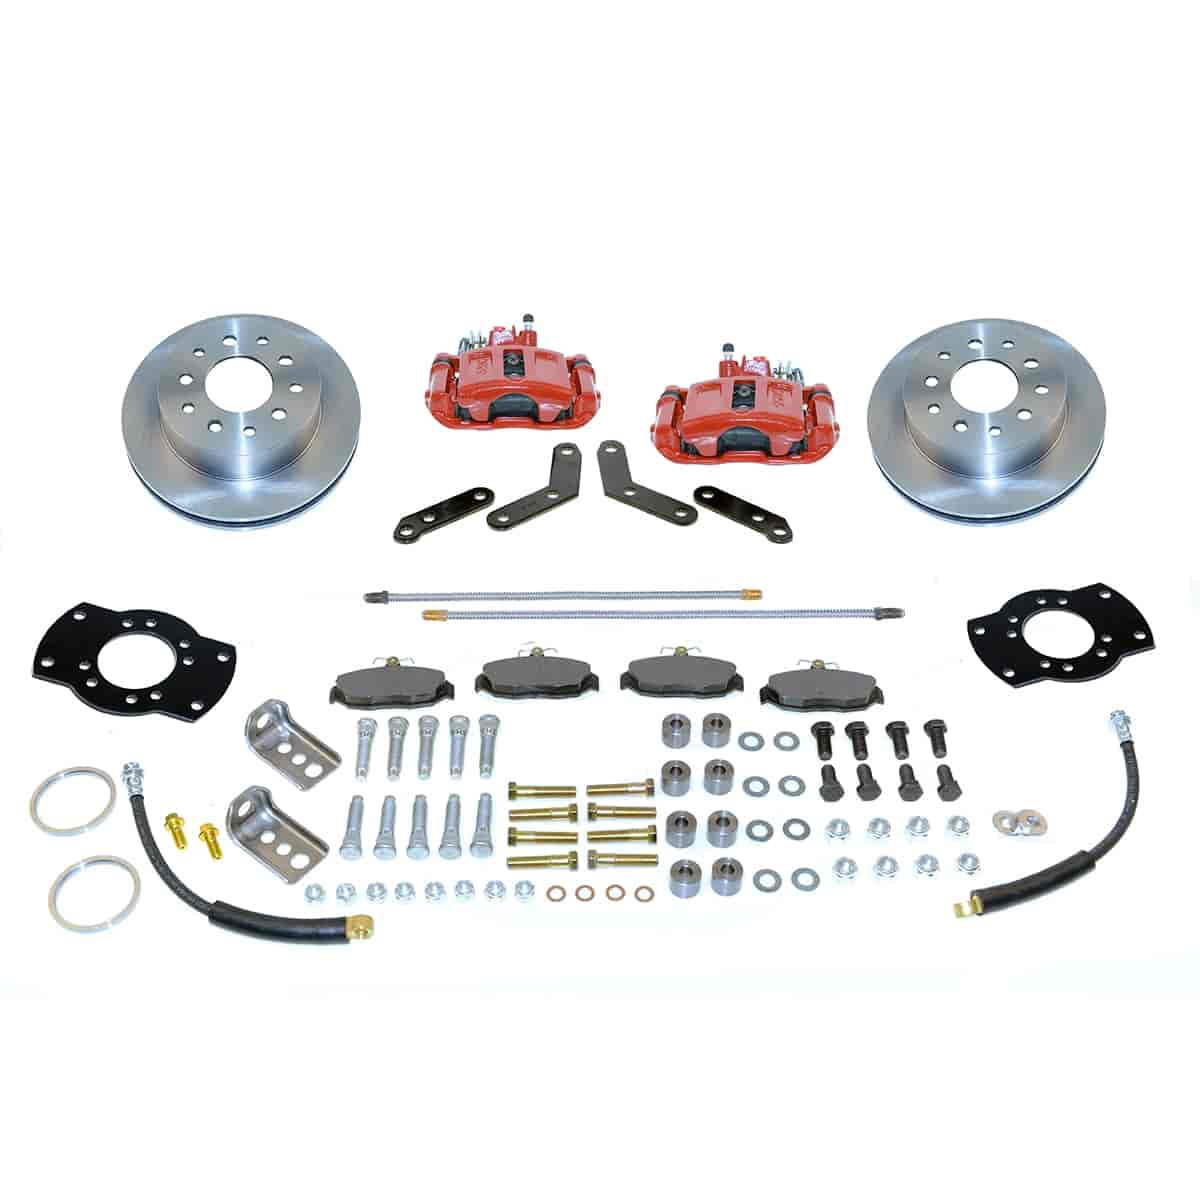 Stainless Steel Brakes A125-4R - Stainless Steel Brakes Single Piston Rear Drum to Disc Brake Conversion Kits